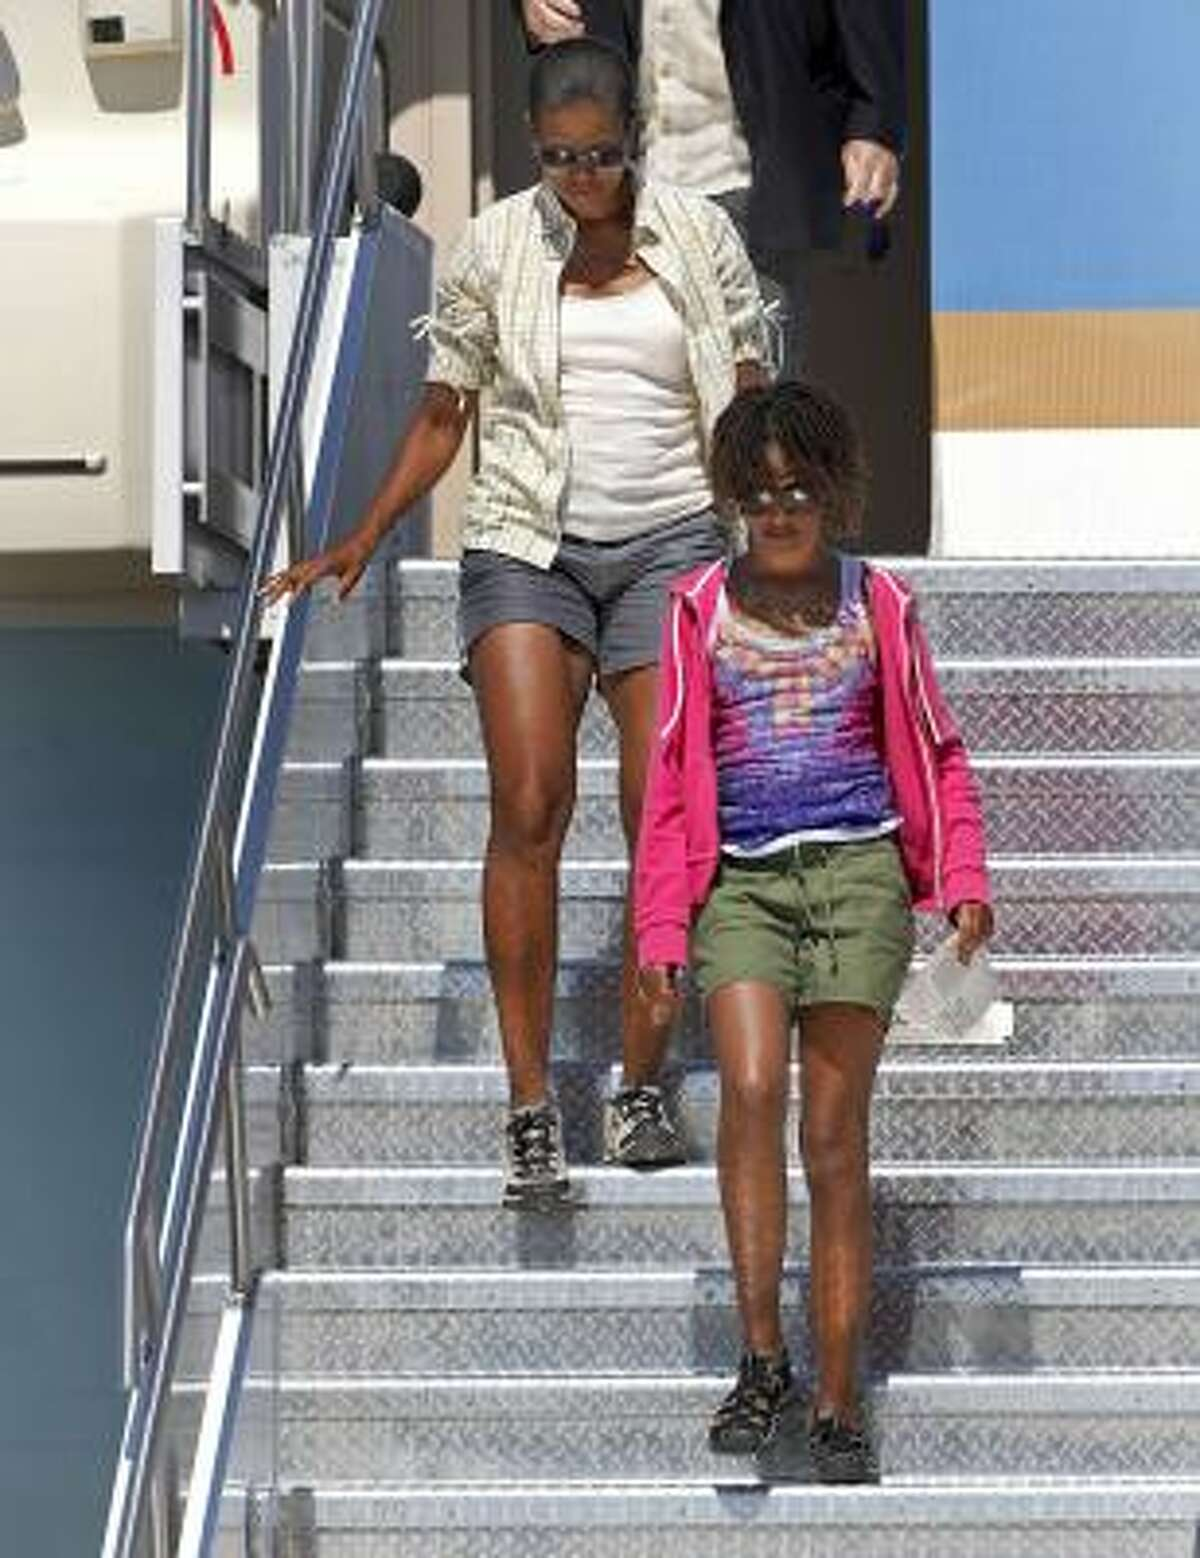 Are shorts an inappropriate fashion choice for the first lady? Michelle Obama walks down the stairs of Air Force One with her daughter Malia on a trip to the Grand Canyon recently.